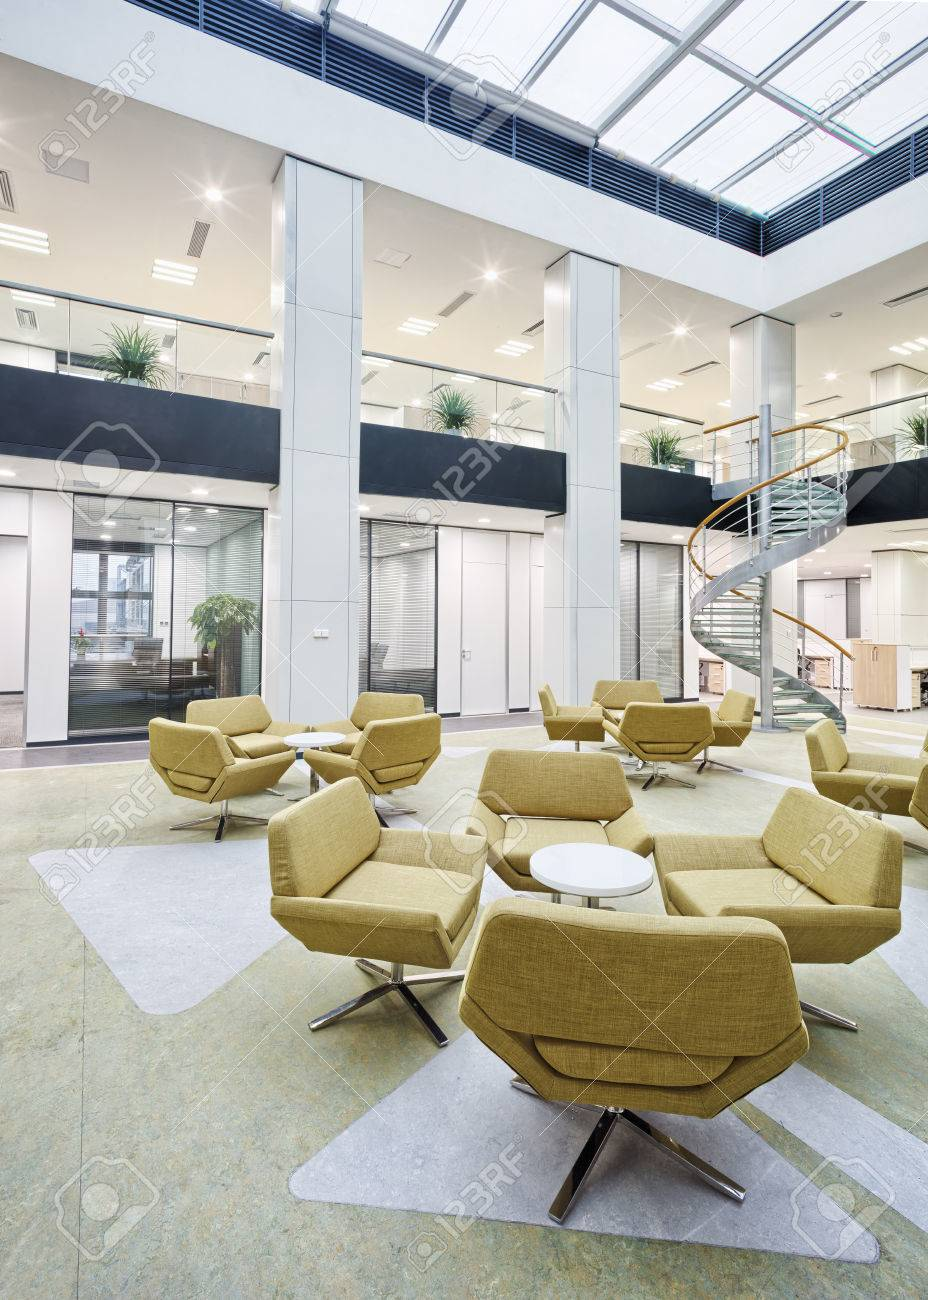 Modern Office Lobby Hall Interior Stock Photo, Picture And Royalty ...